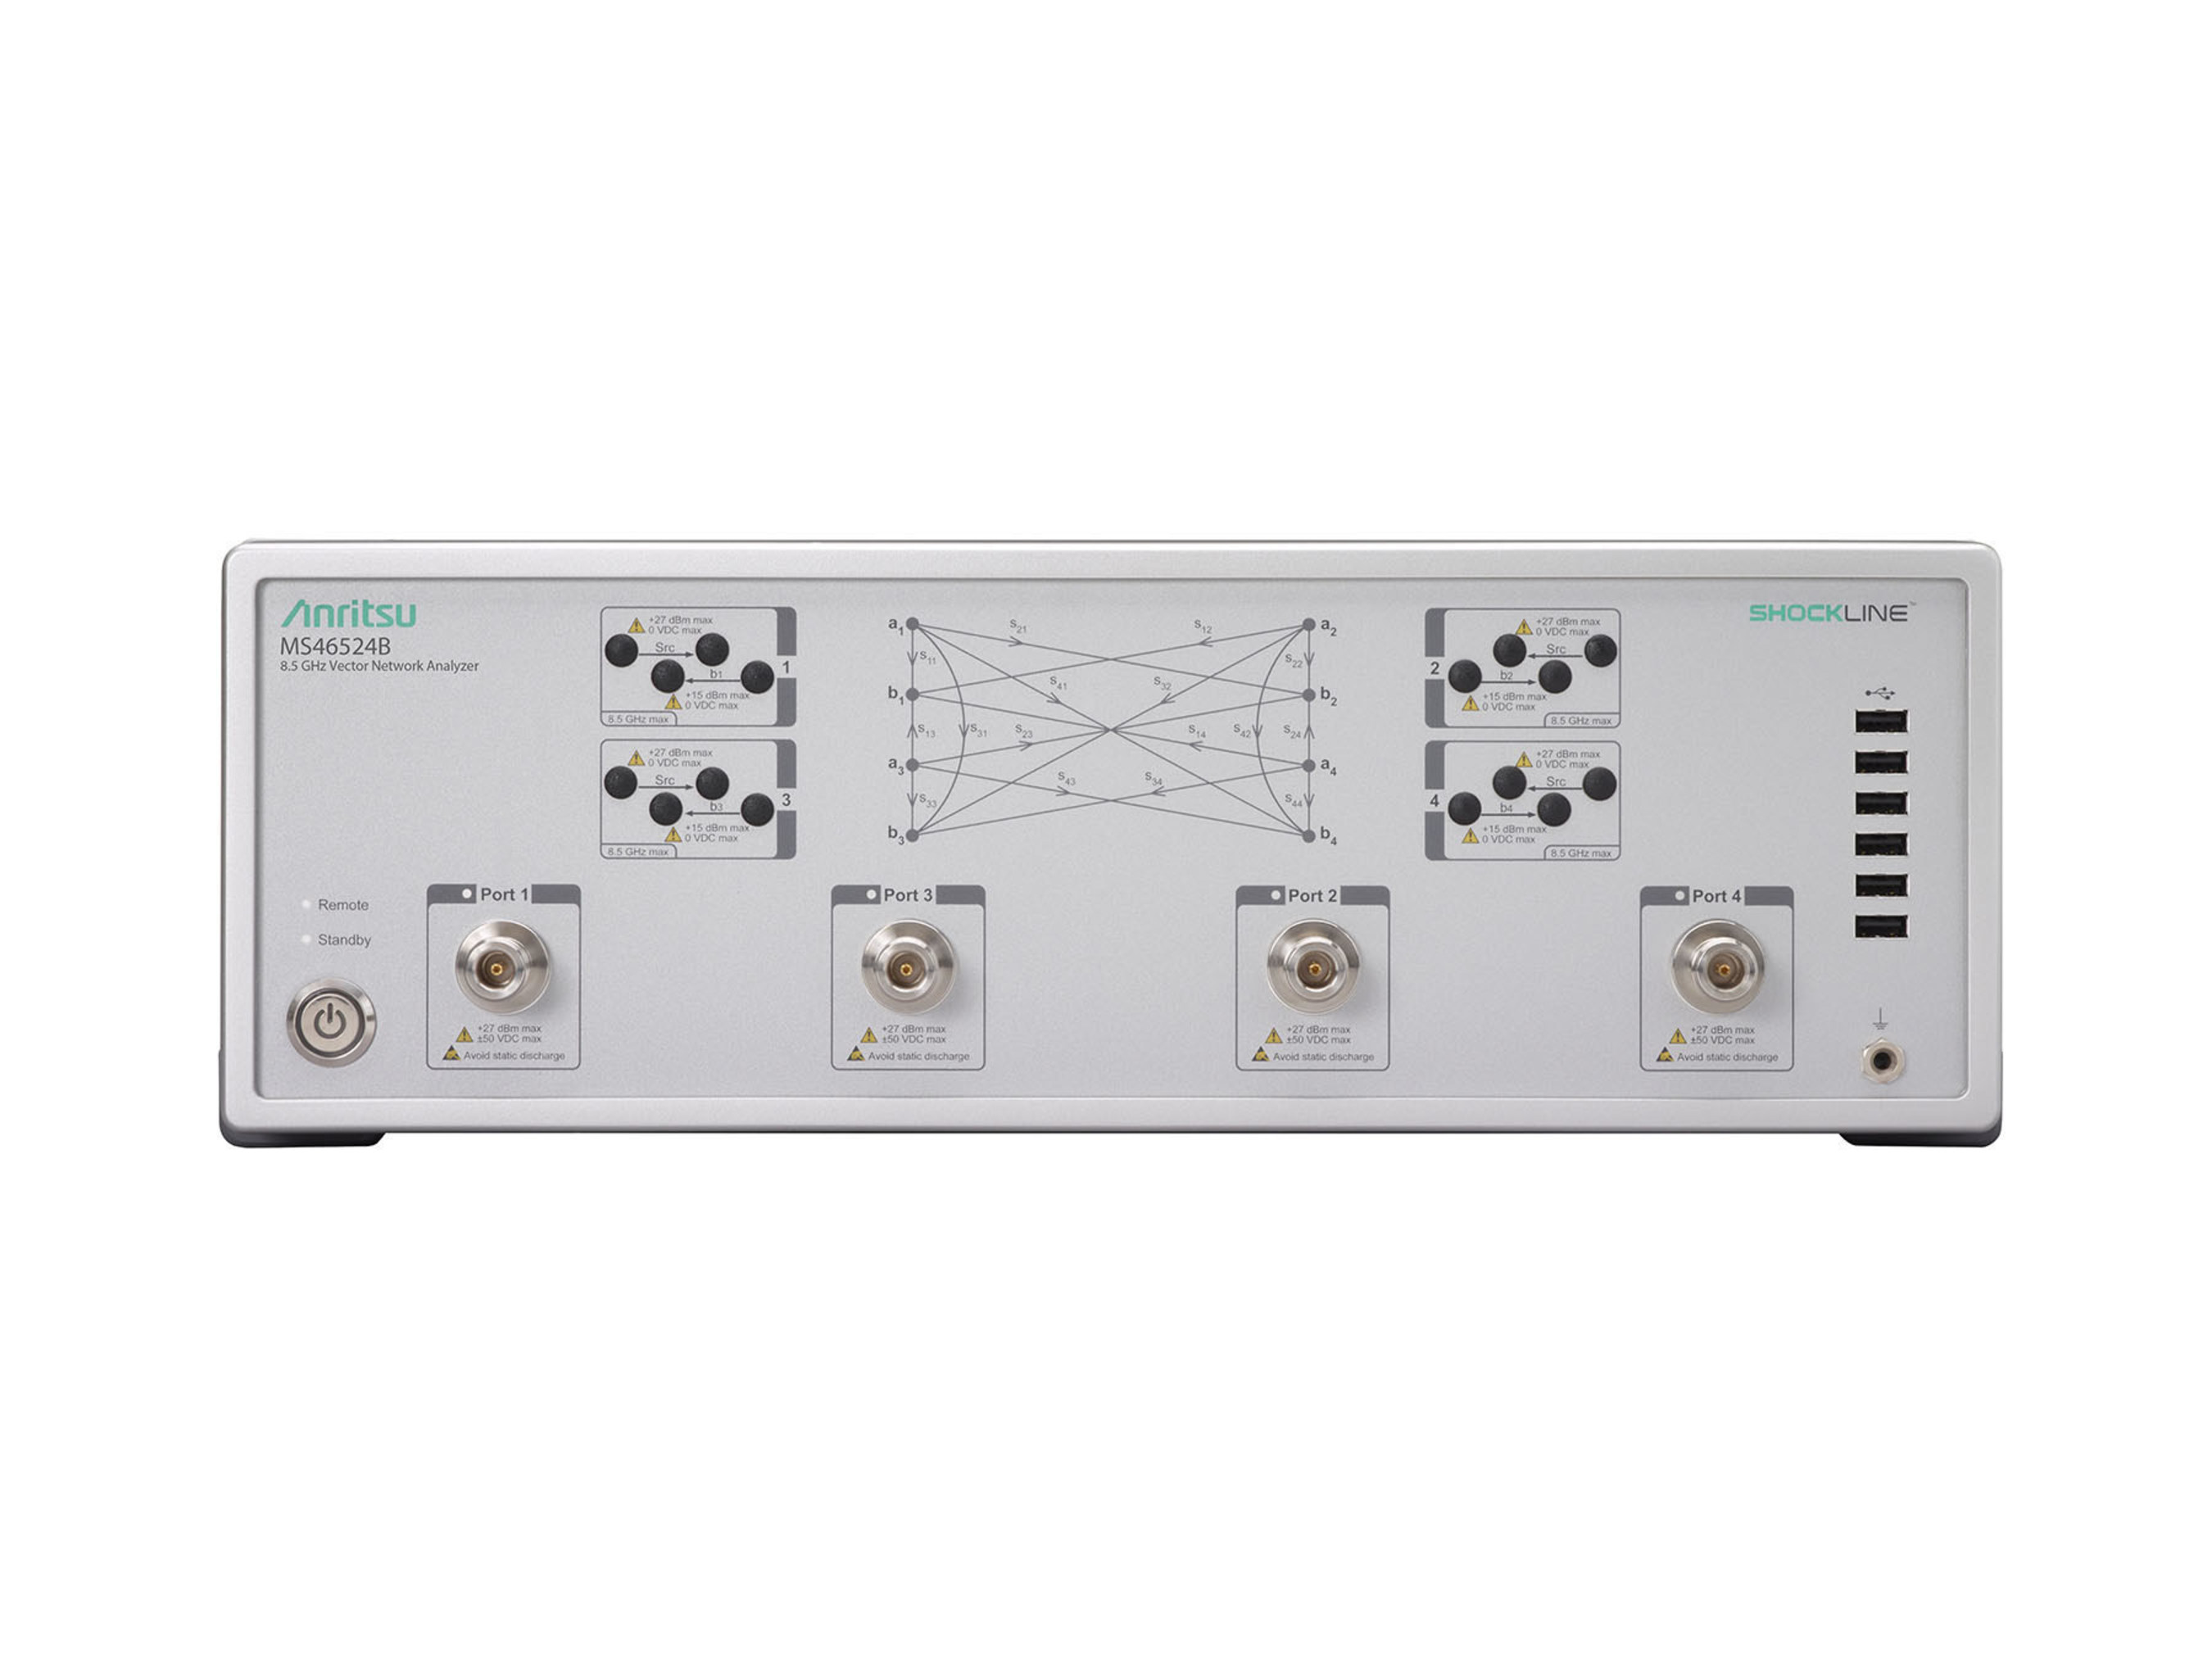 Anritsu Company expands its ShockLine(TM) family of affordable vector network analyzers (VNAs) with the introduction of the Performance ShockLine MS46500B series that delivers an unprecedented level of value and performance, including best-in-class dynamic range and maximum output power.